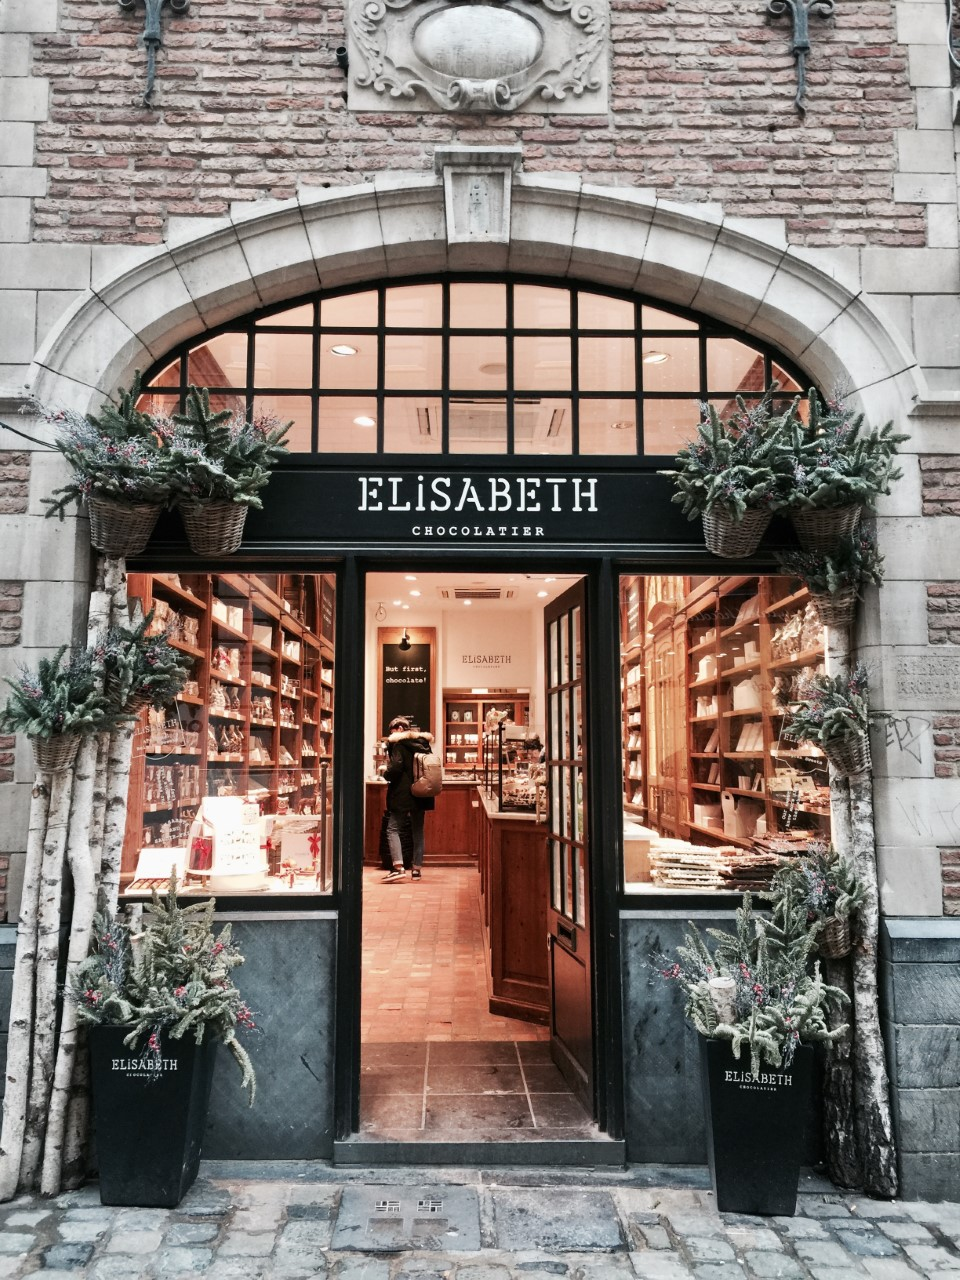 ELISABETH CHOCOLATIER  - Elisabeth is an independent boutique in Brussels that collects Belgium's best artisanal sweets.It doesn't hurt that the storefront is just so cute too!